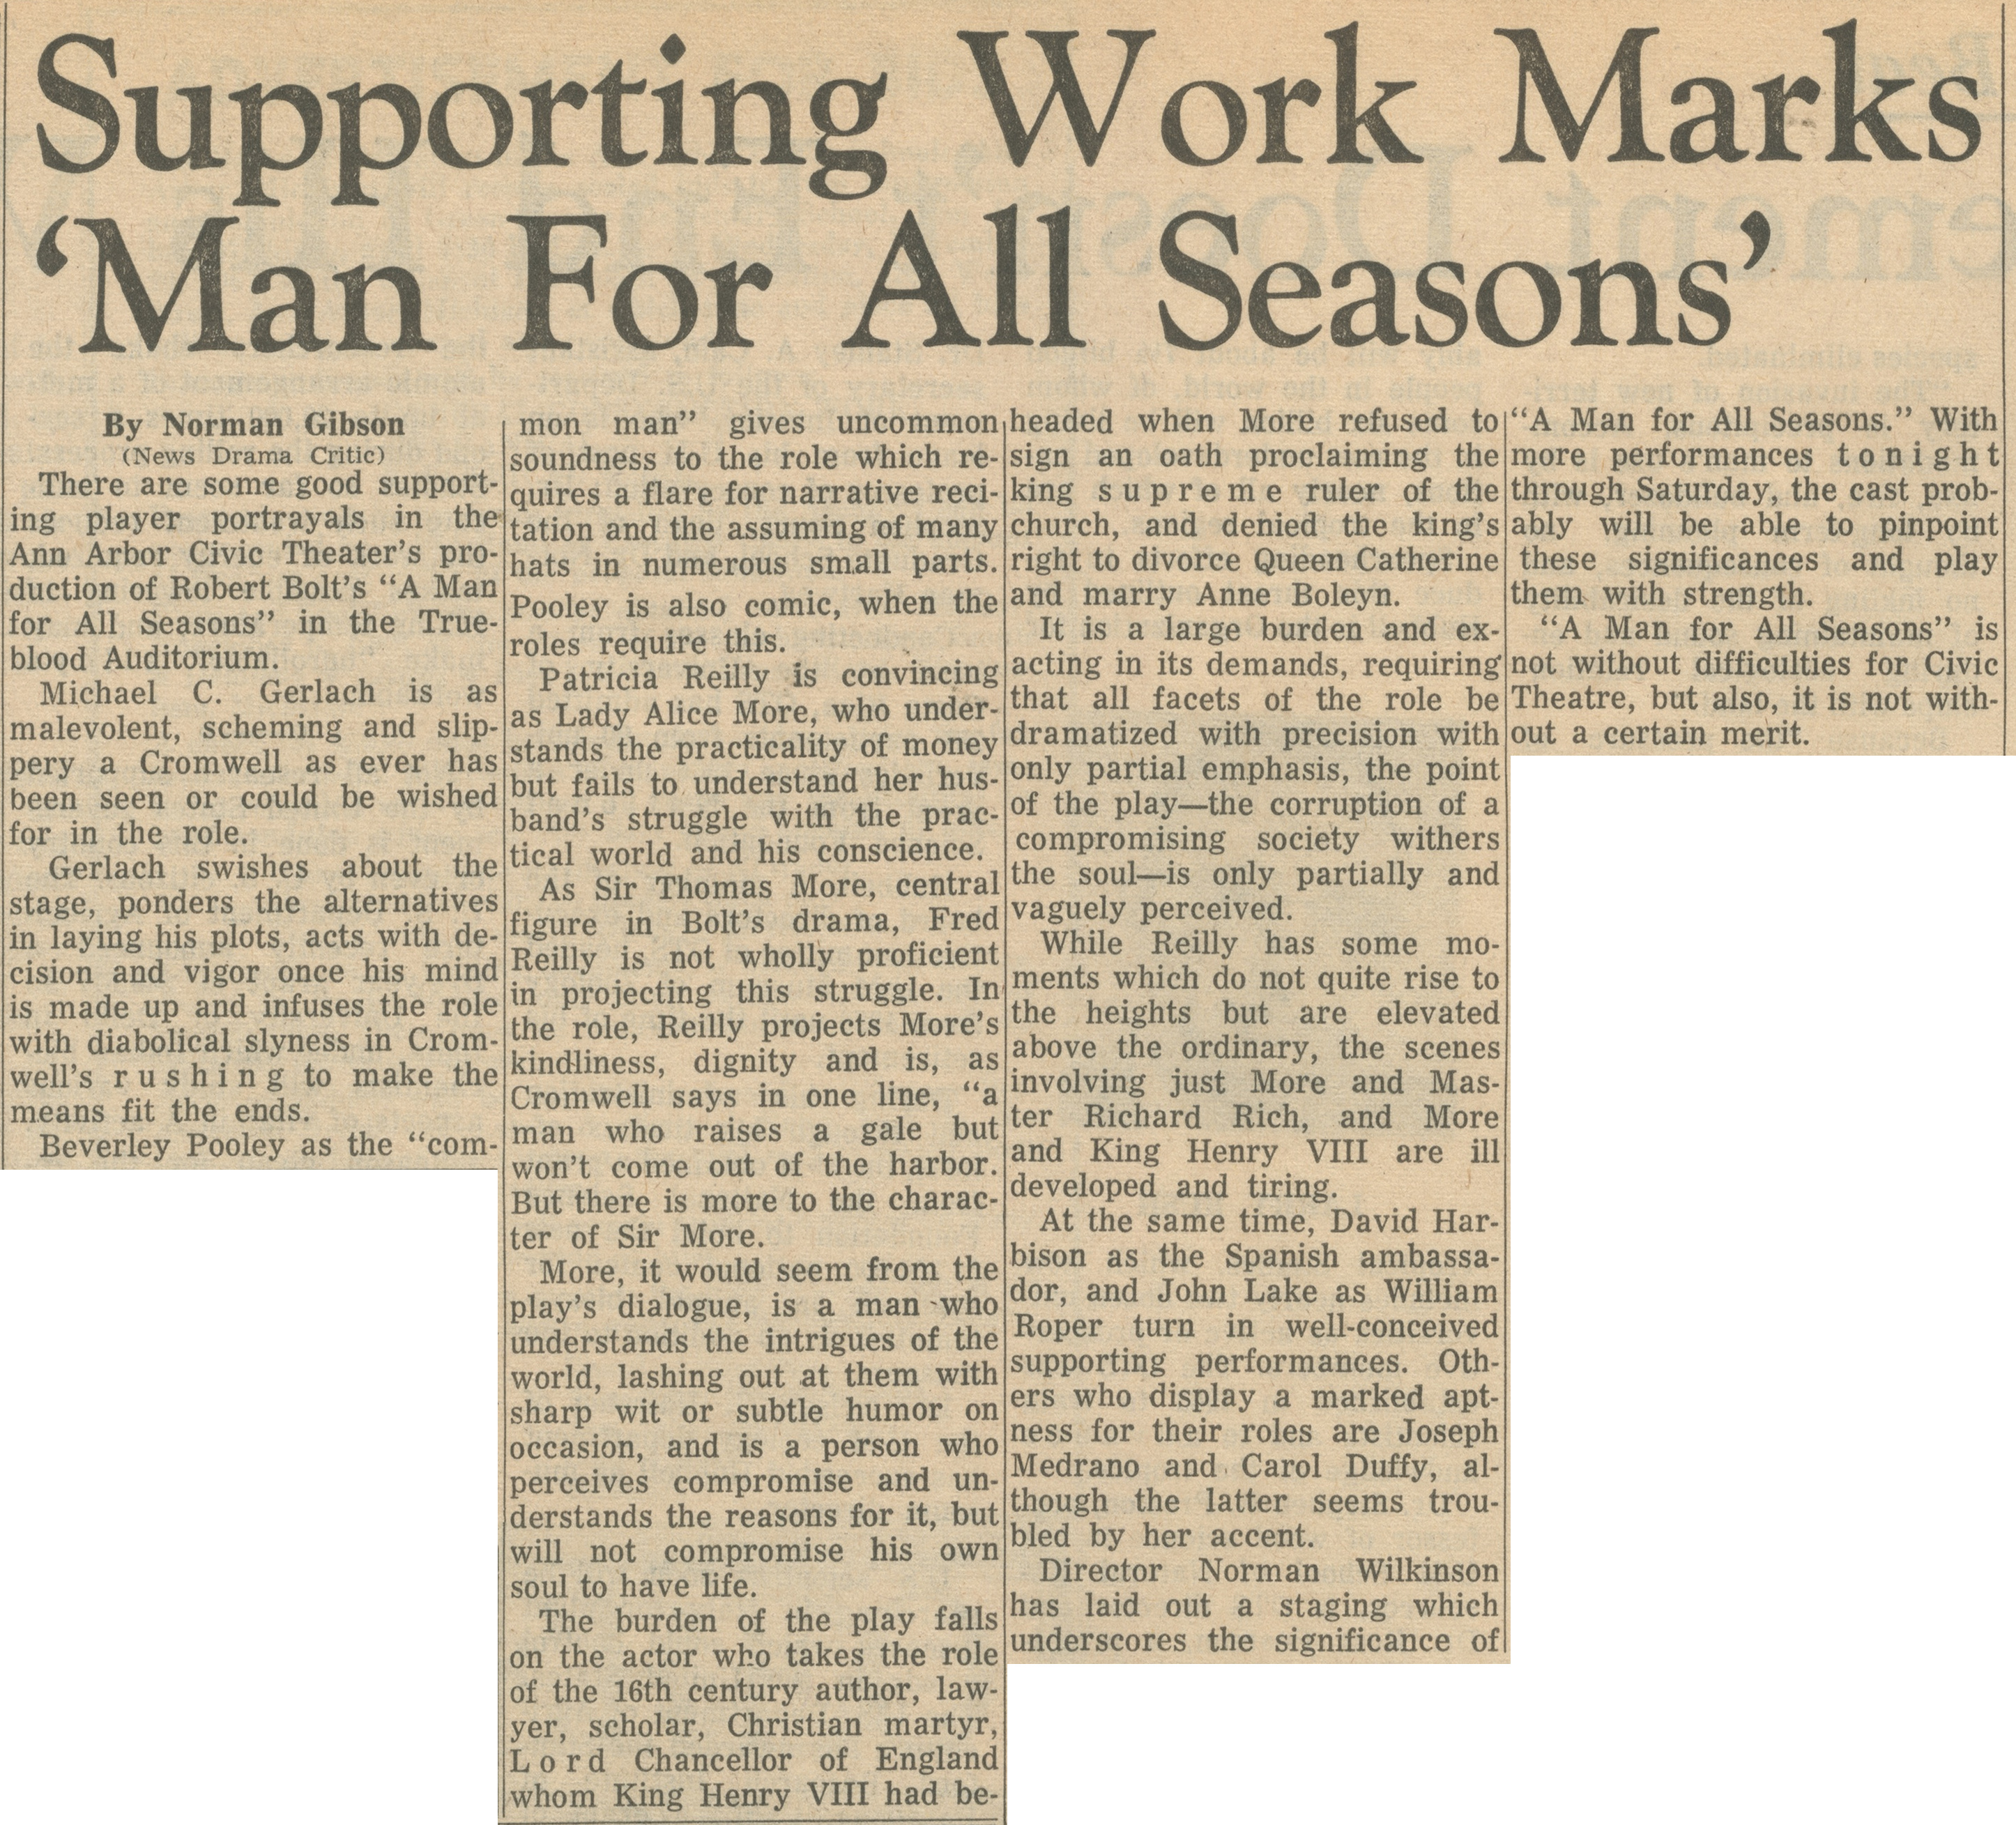 Supporting Work Marks 'Man For All Seasons' image